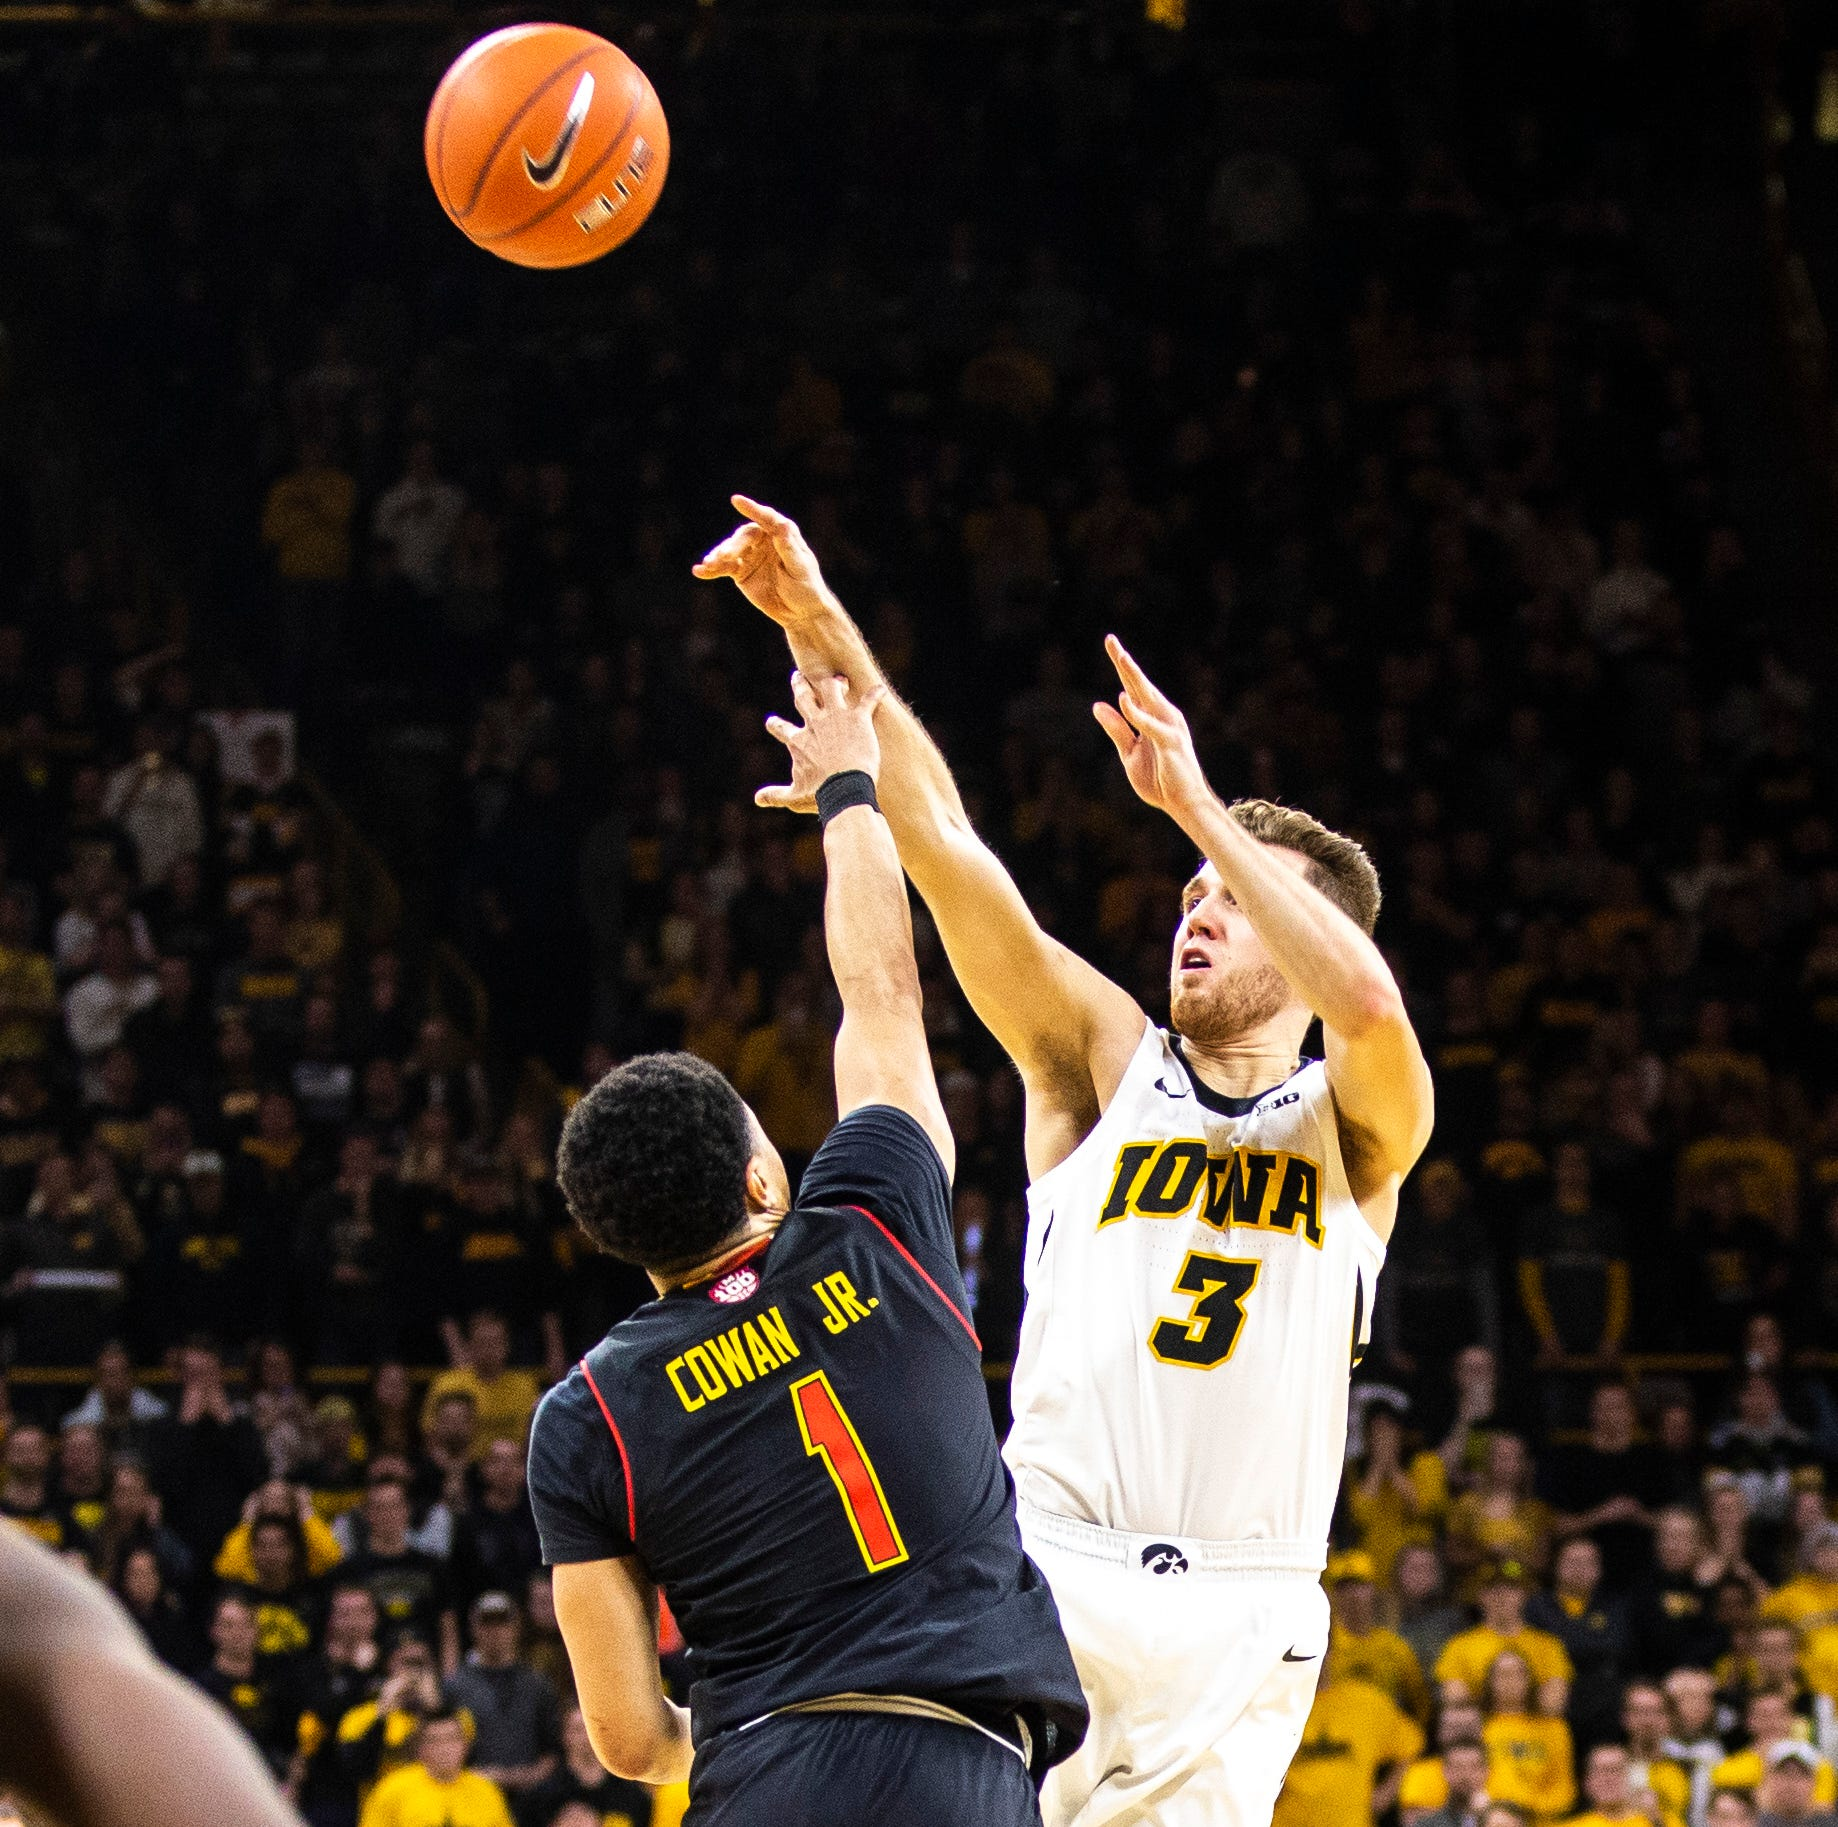 Iowa's last-second shots fall short; Maryland walks away with 66-65 win